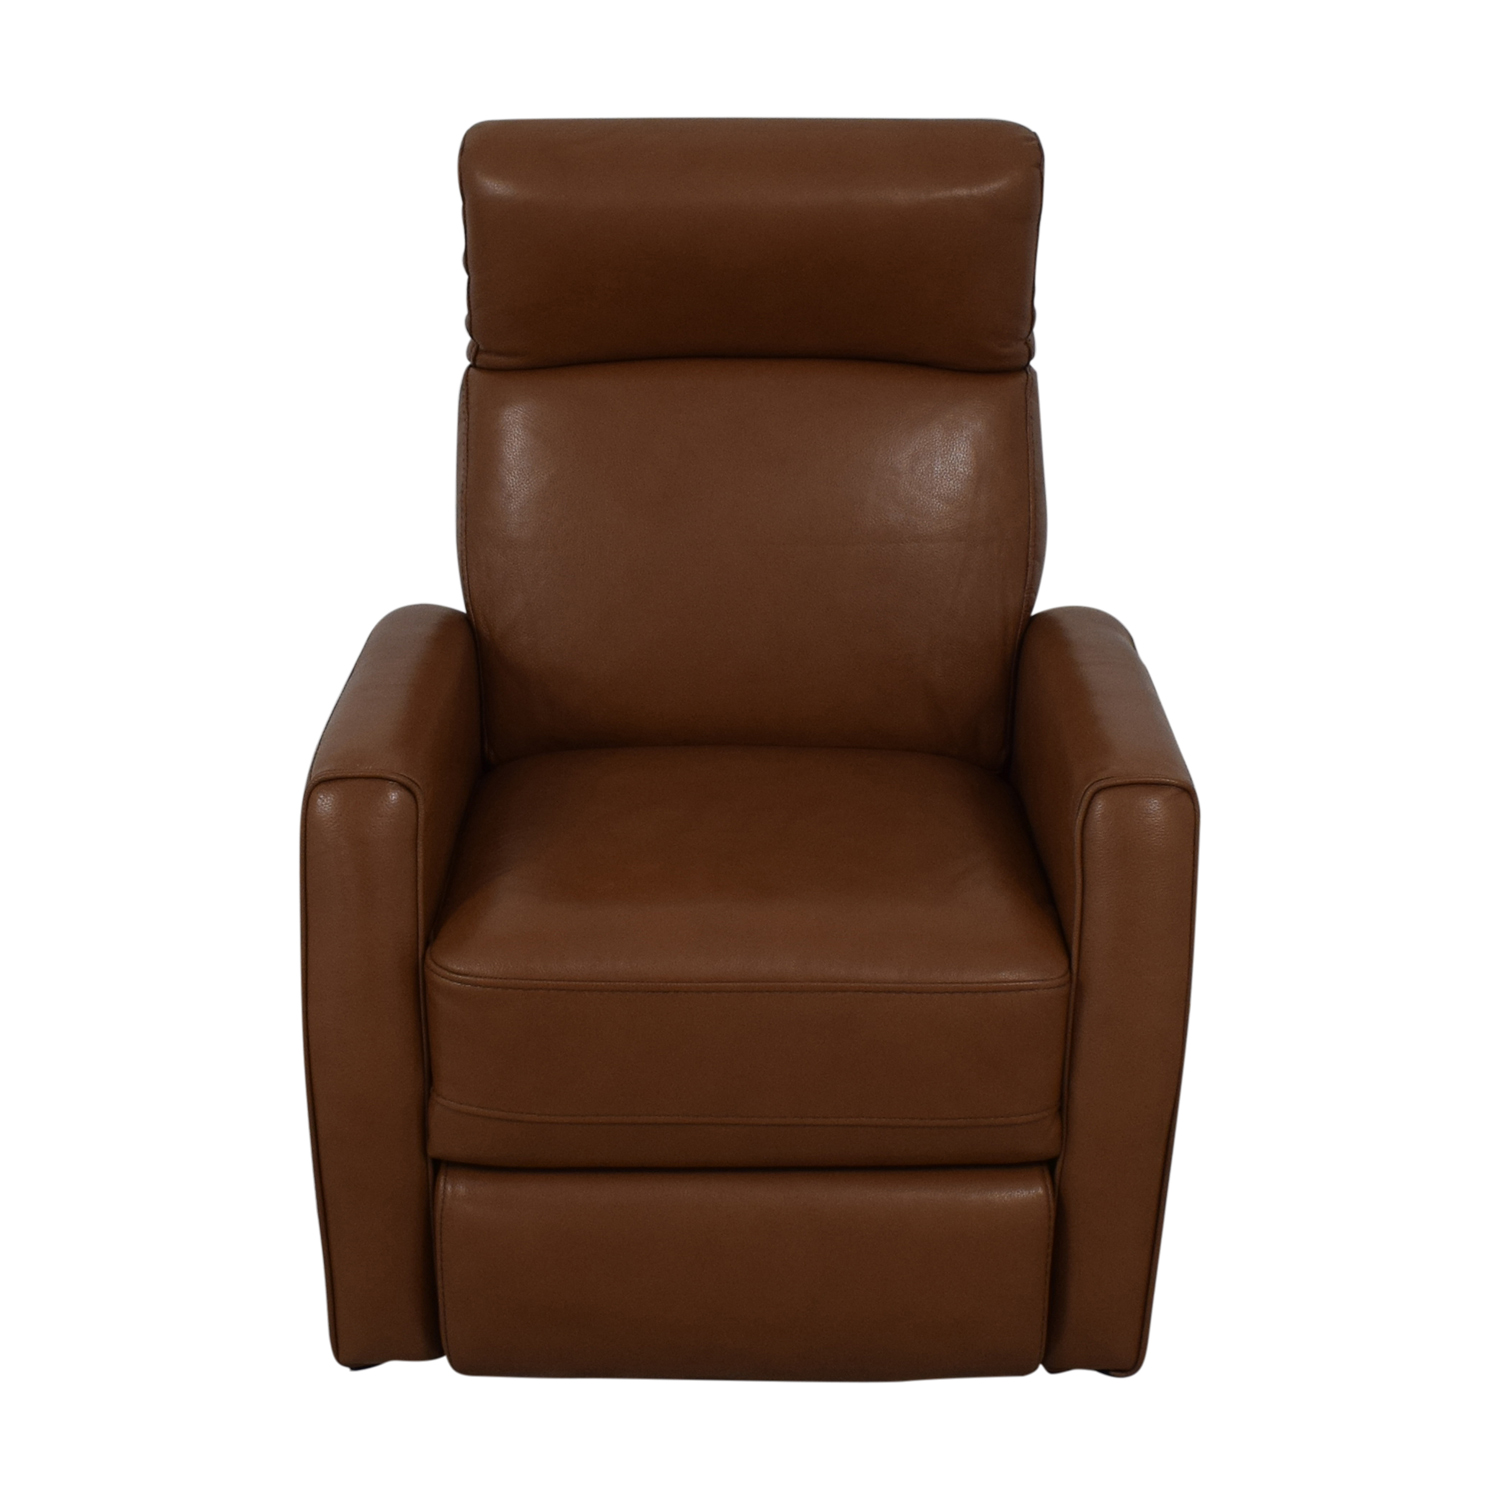 Macy's Macy's Power Reclining Armchair Chairs